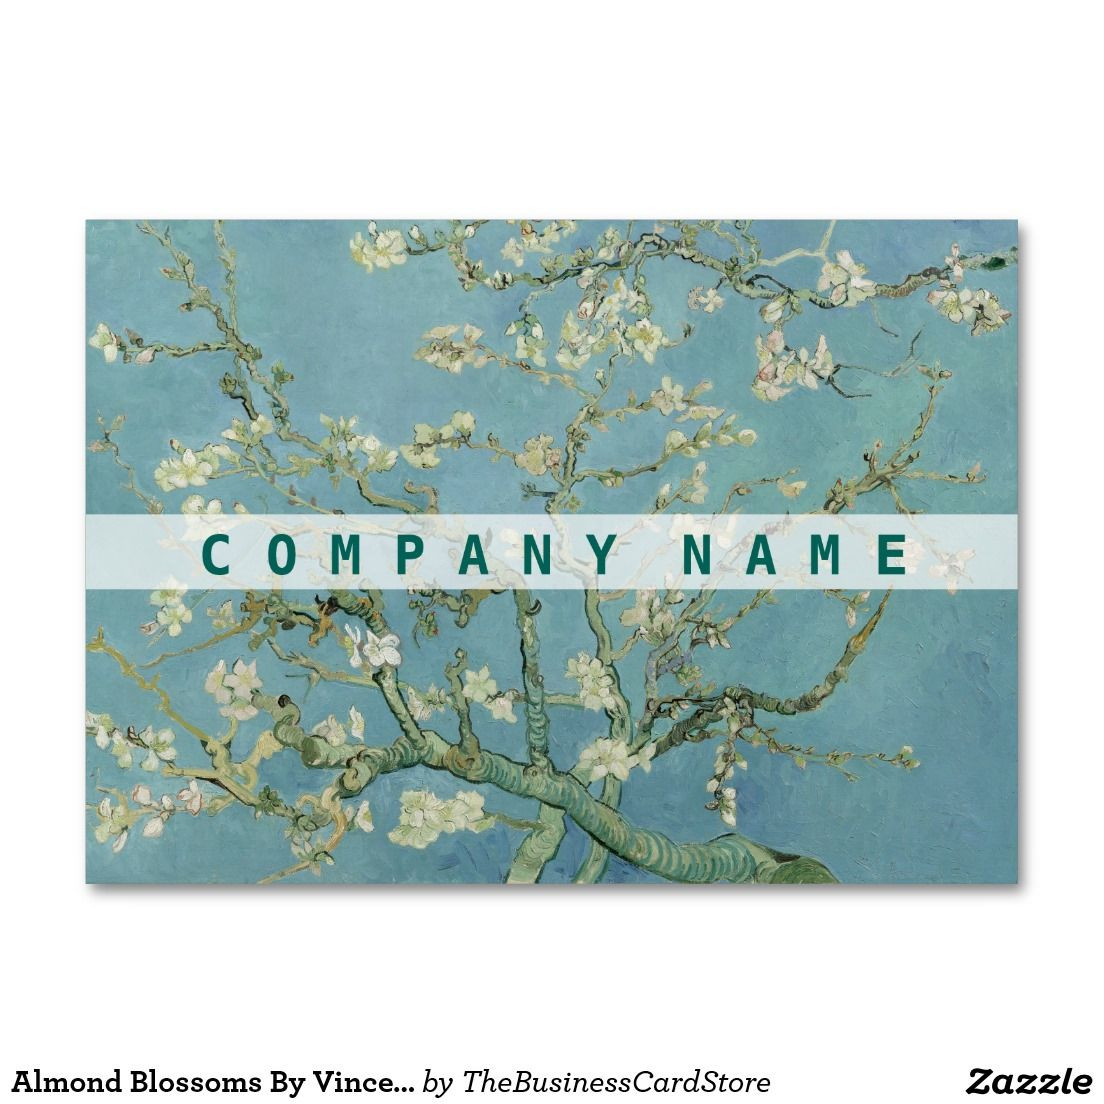 vincent van gogh vase with cornflowers and poppies of almond blossoms by vincent van gogh large business card arts and in almond blossoms by vincent van gogh large business card